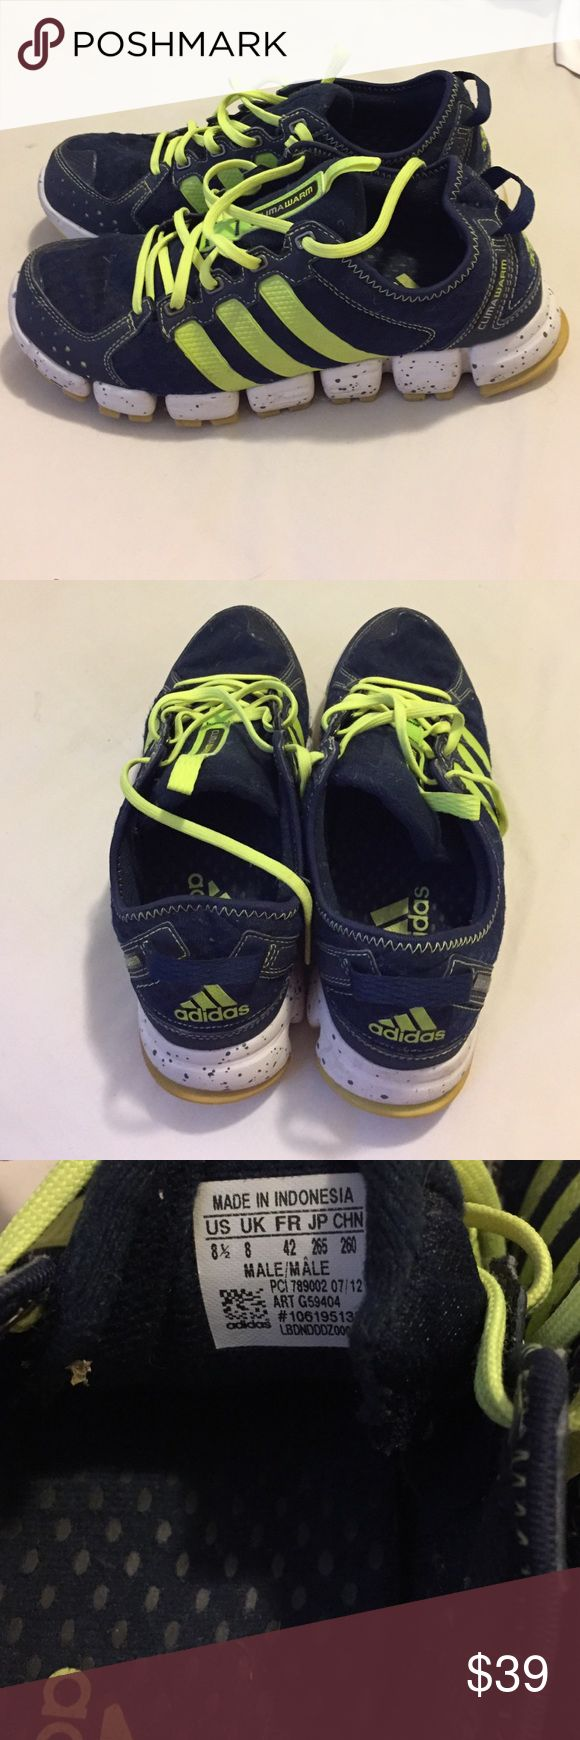 Adidas Trail Running Shoe, Size 8.5 Adidas Navy Trail Running Shoe with Lime Green Accent, Size 8.5 Adidas Shoes Athletic Shoes